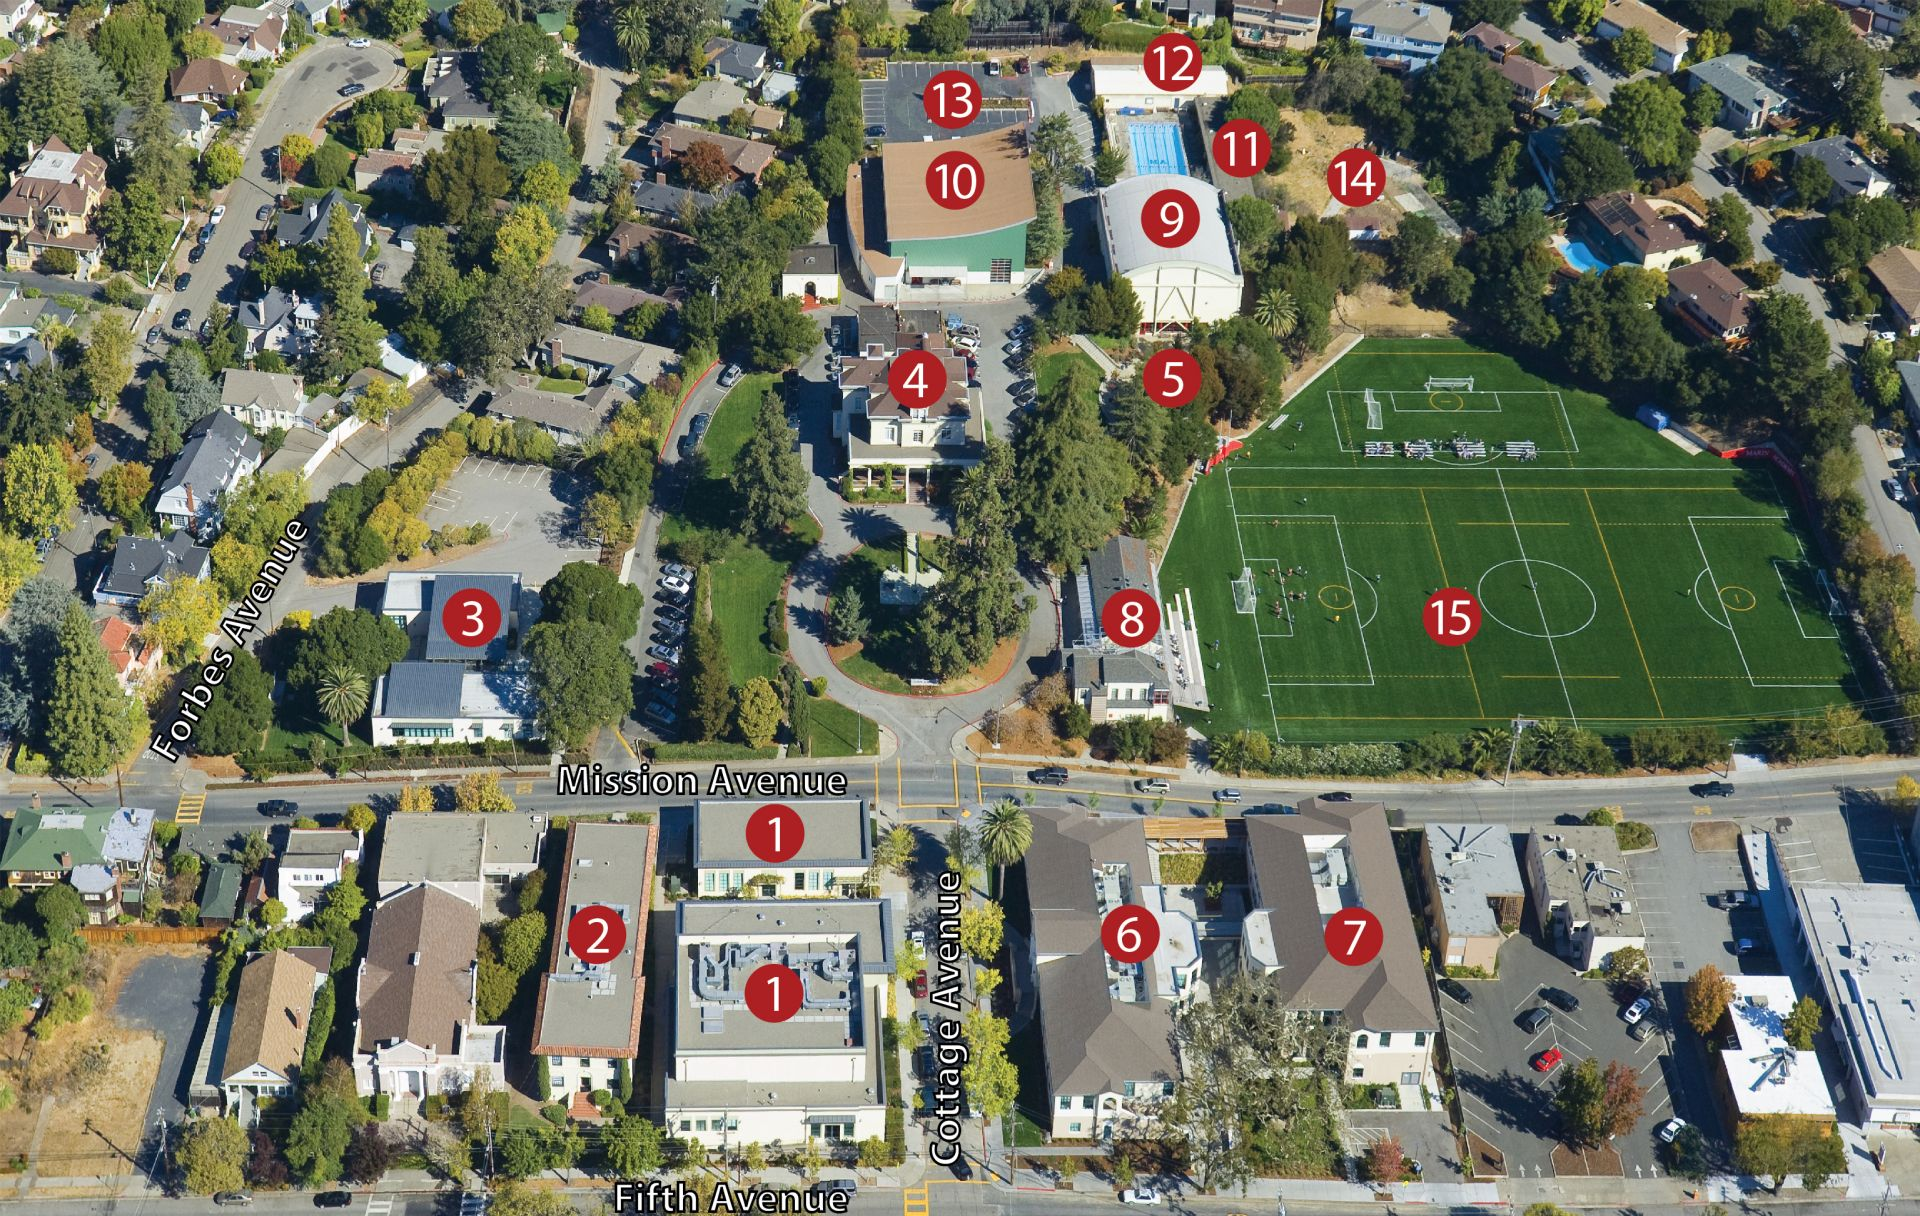 Campus Map Directions Parking